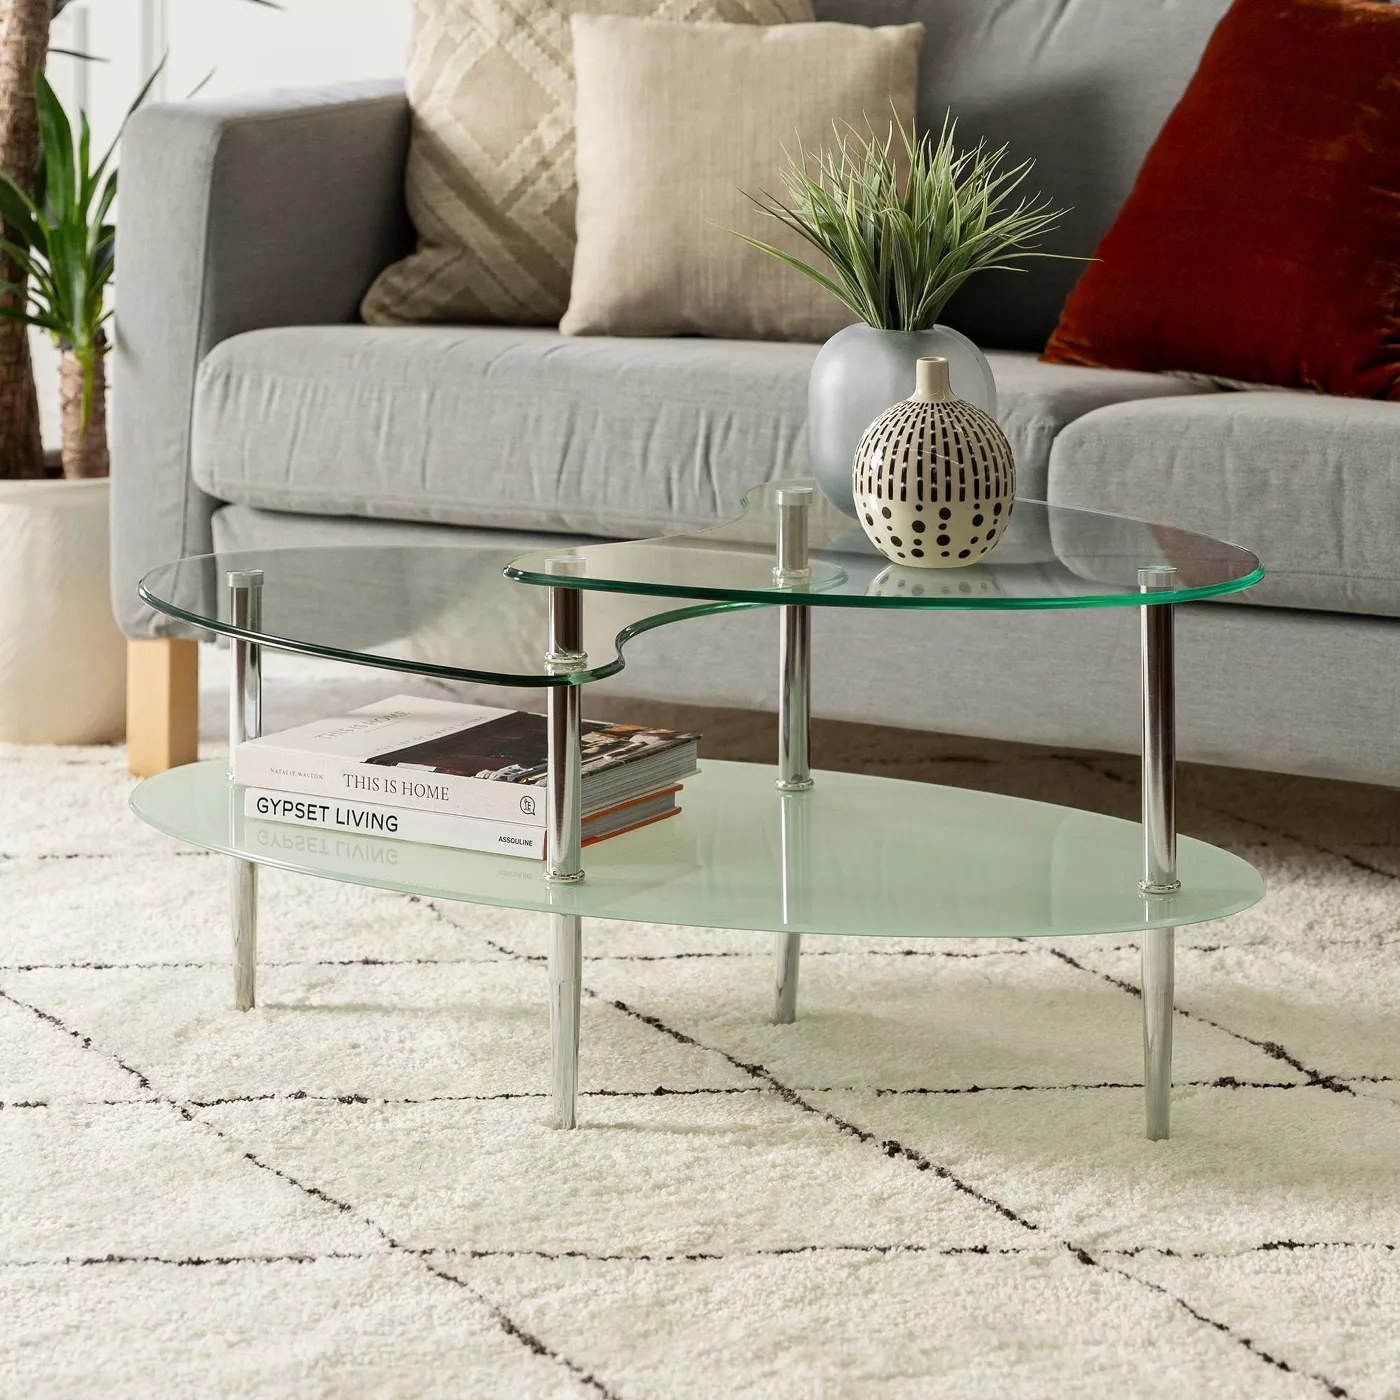 The glass coffee table